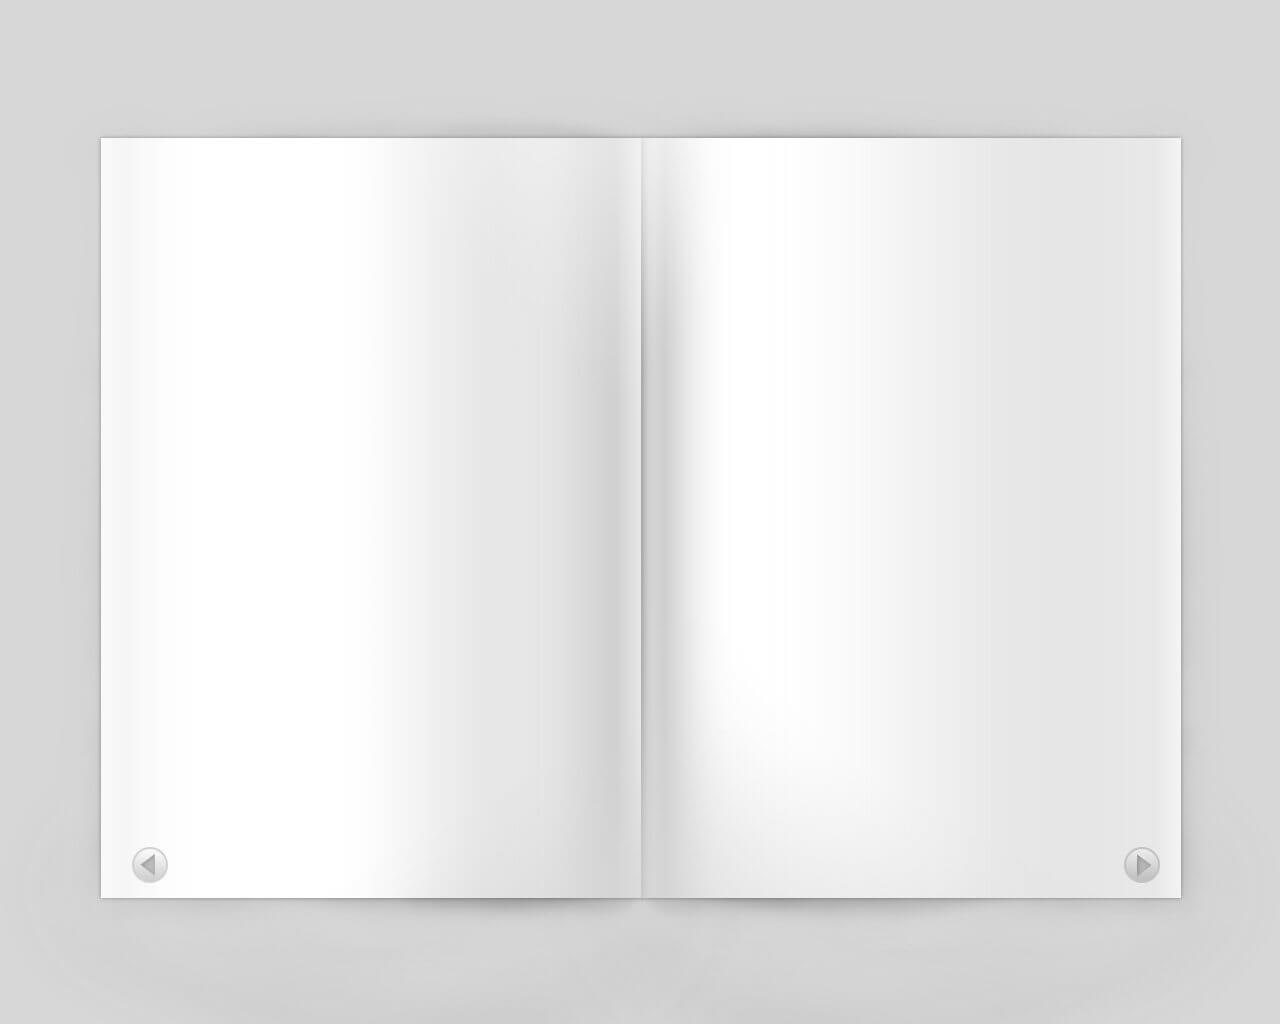 14 Magazine Template Psd File Images – Blank Magazine Page Pertaining To Blank Magazine Template Psd